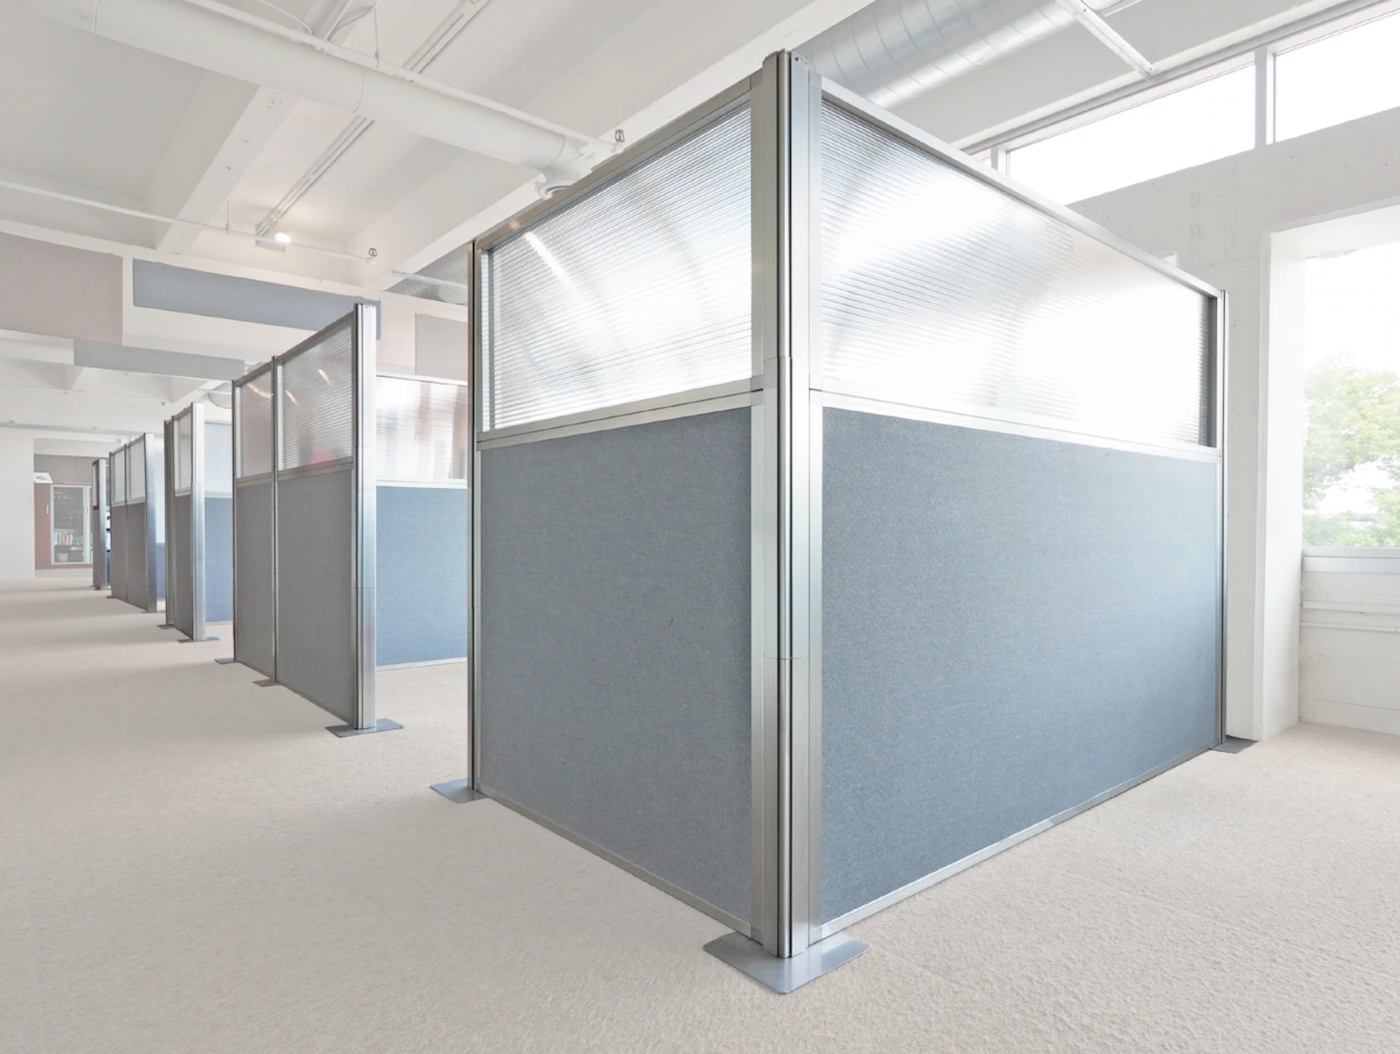 Panel Systems - Buying Cubicles